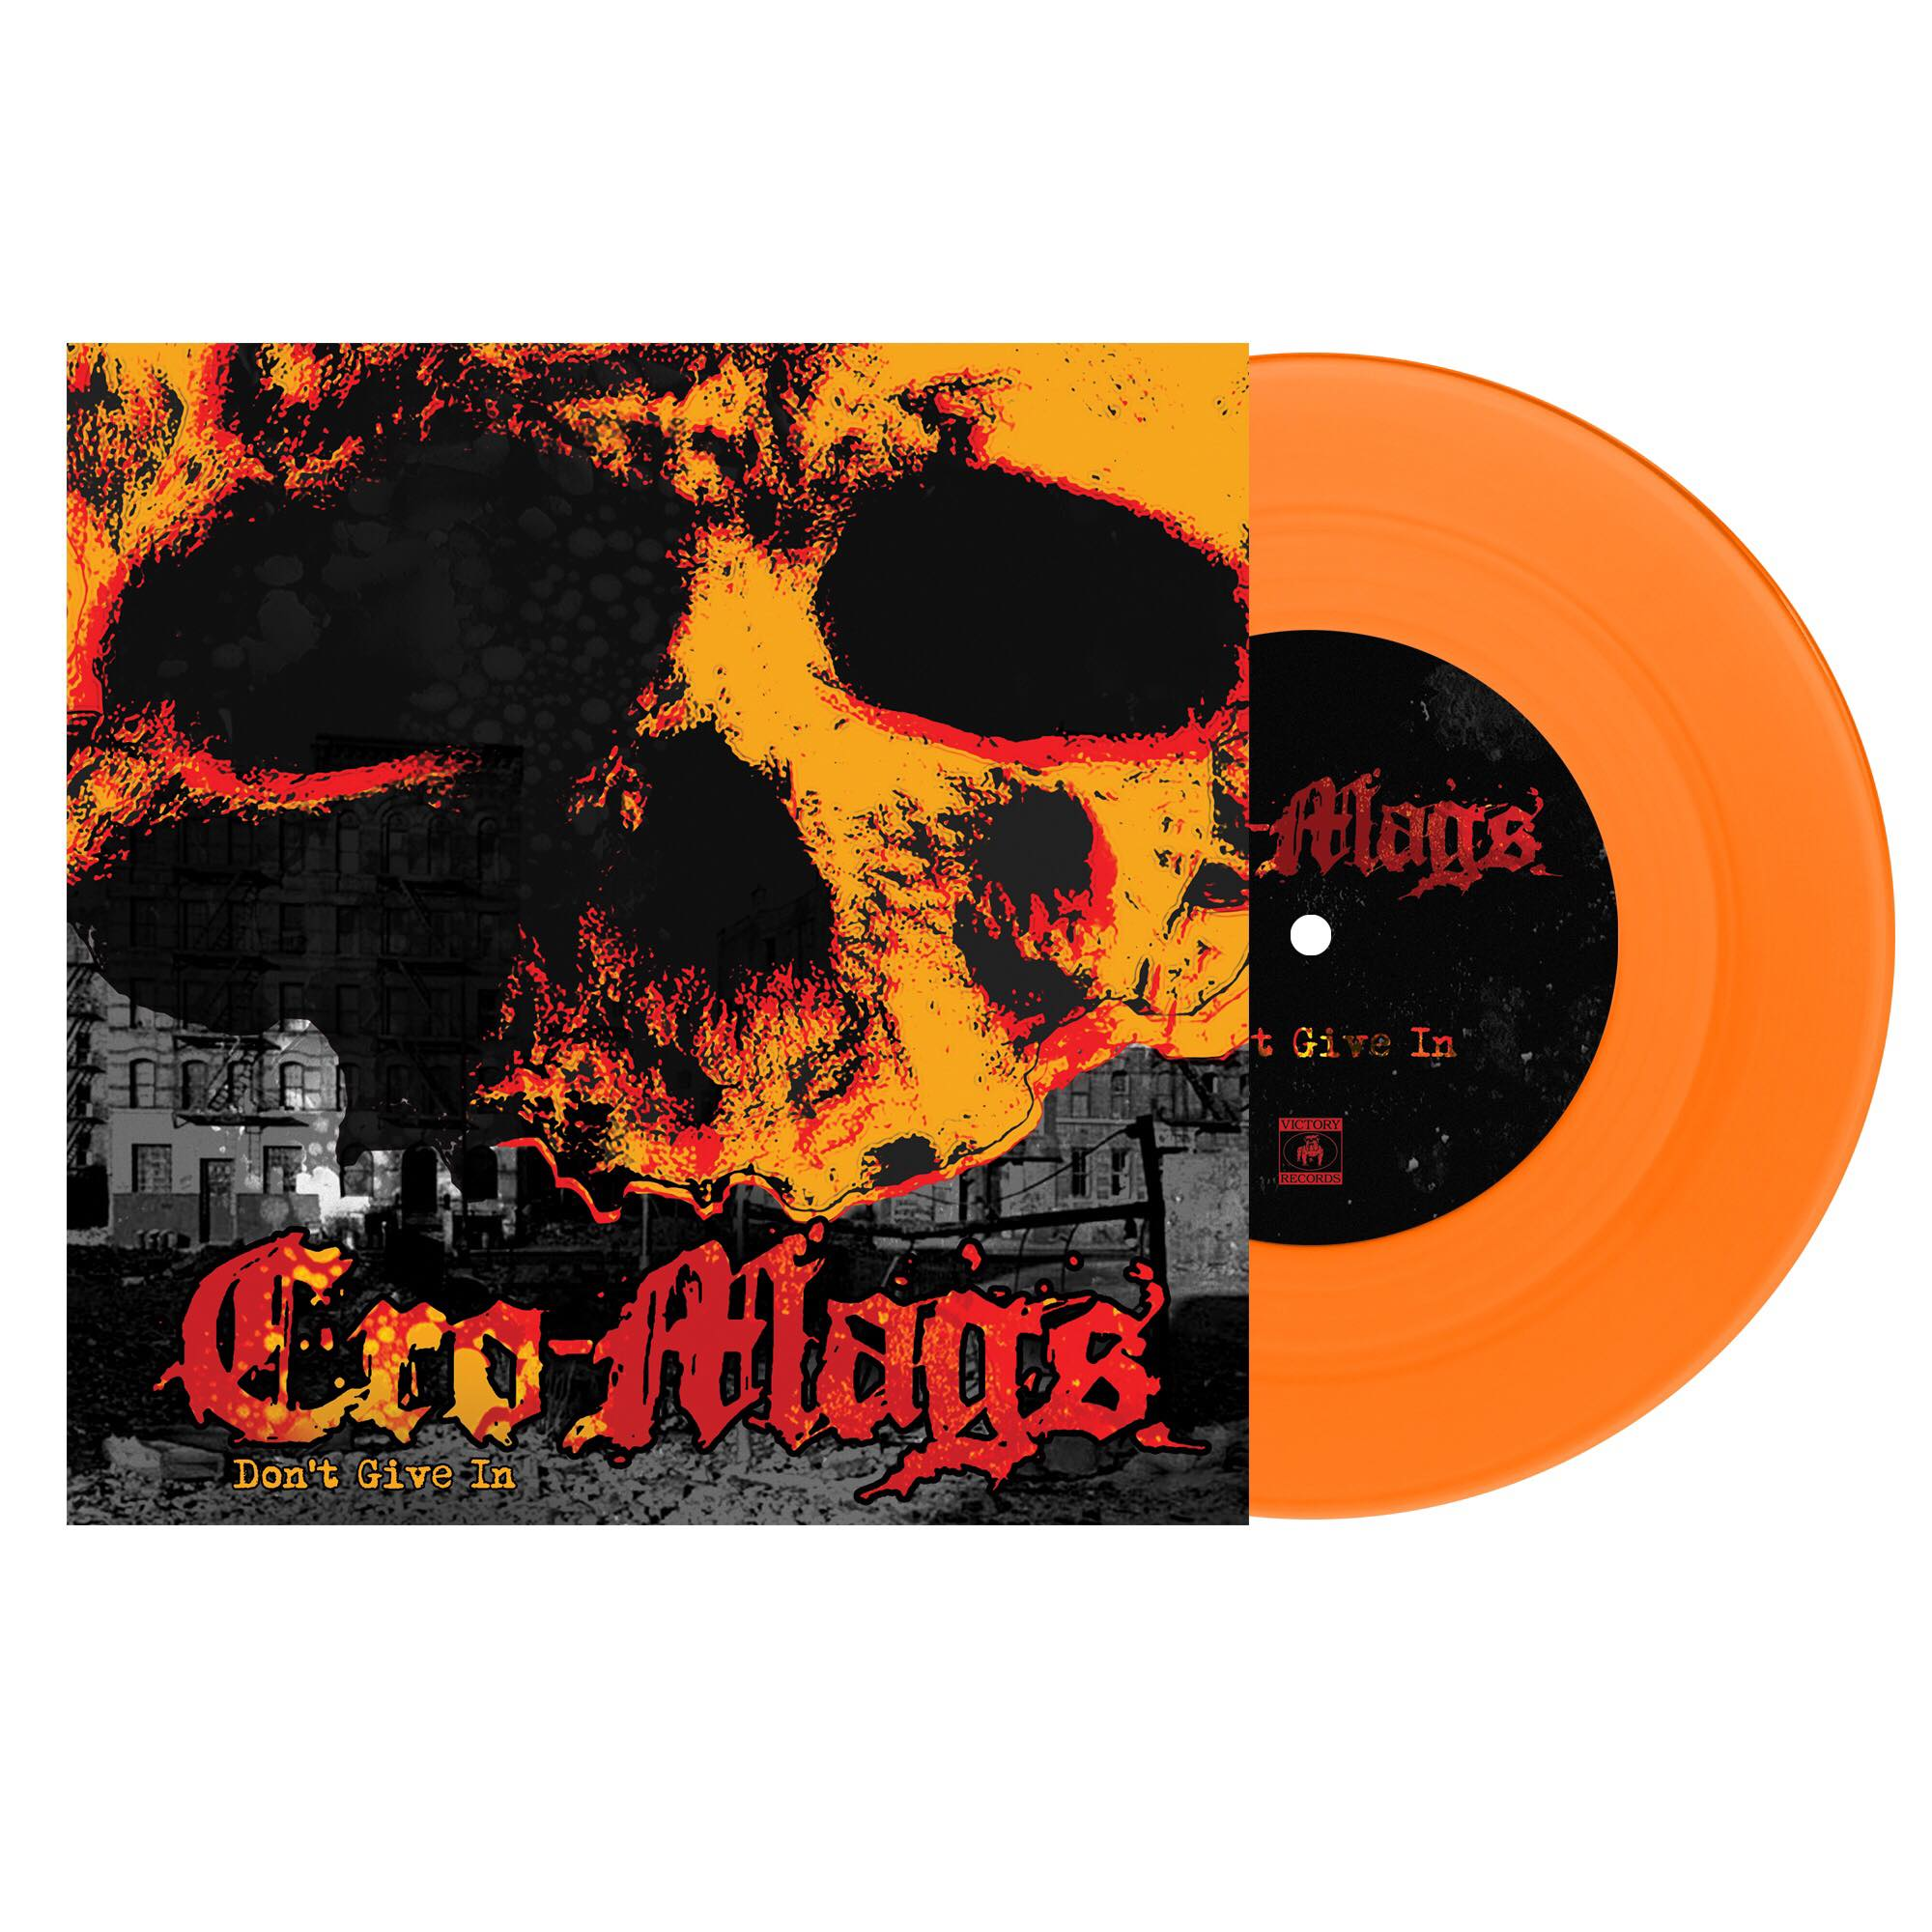 "CRO-MAGS 'Don't Give In' 7"" / COLORED EDITIONS"